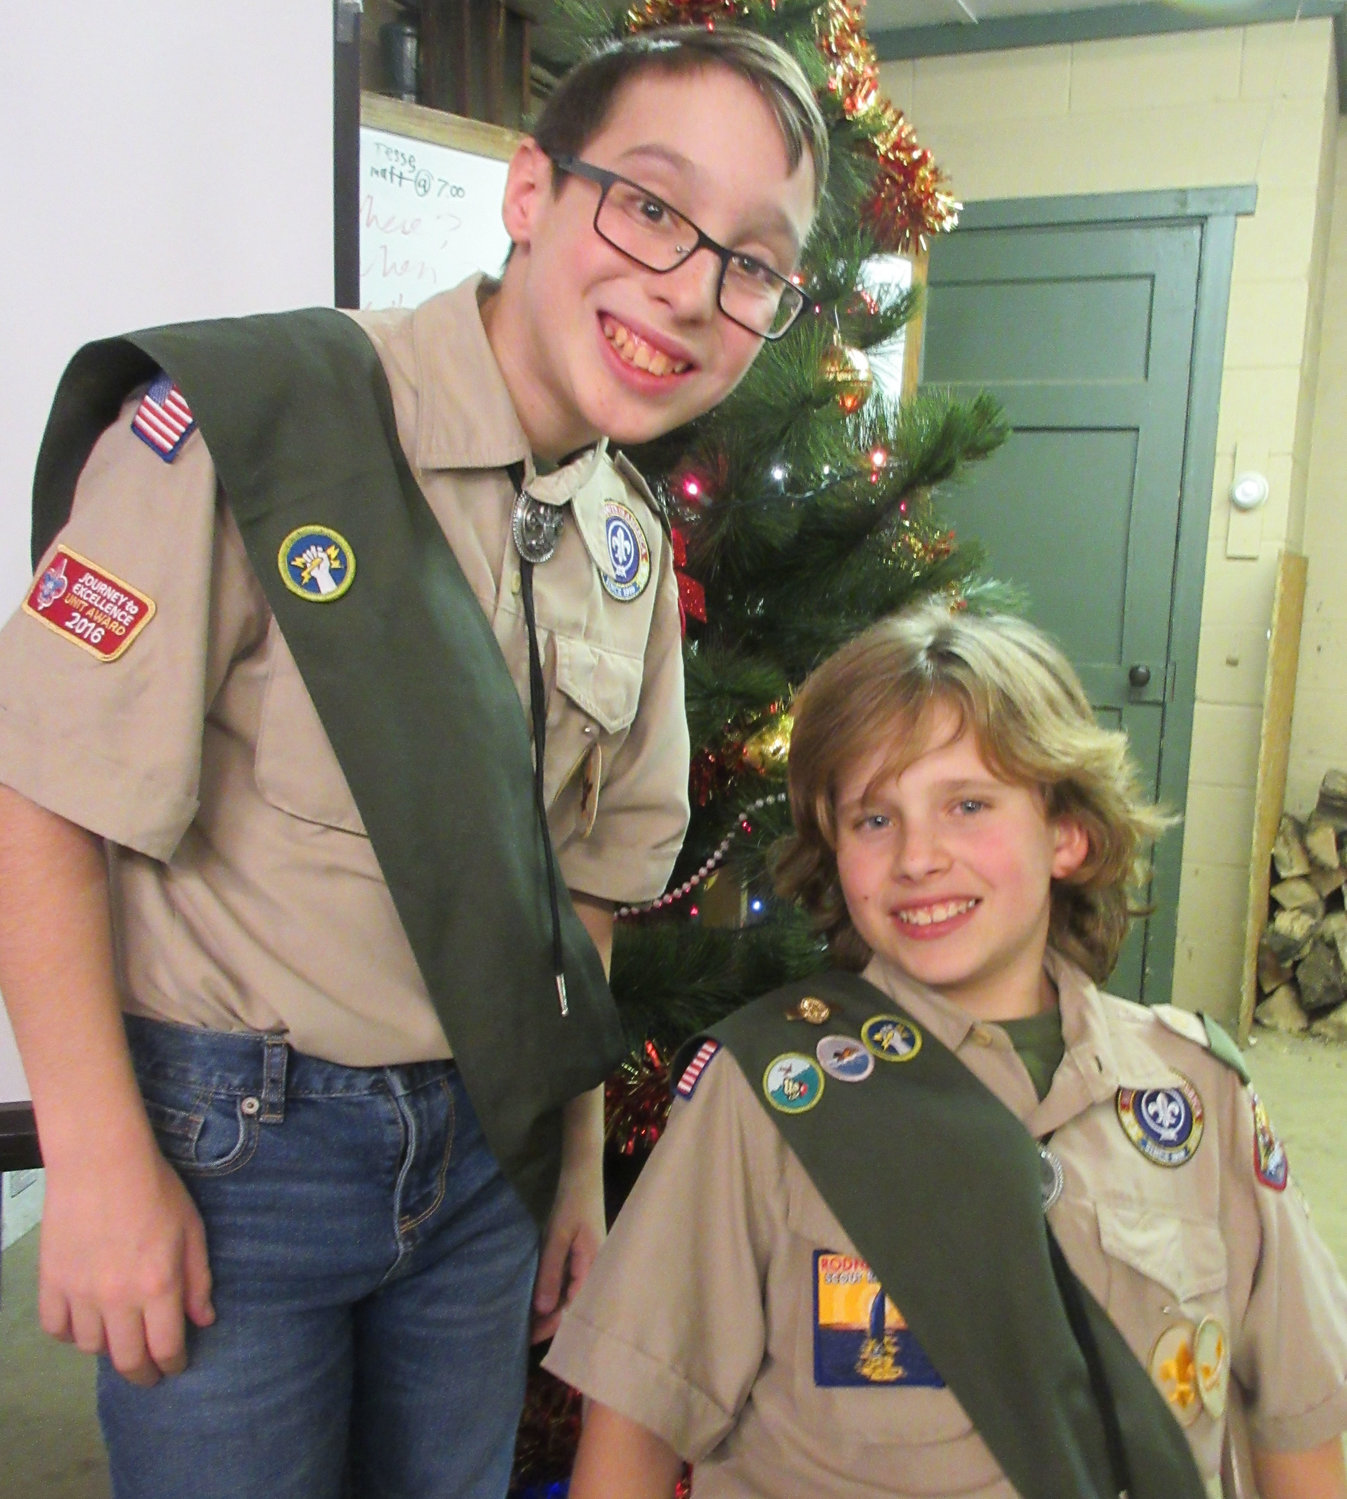 Jaime Gallick and Jesse Reigle were advanced to the rank of Tenderfoot at the awards banquet. Jesse then took the oath of Second Class Scout, which Jaime will achieve in the near future.